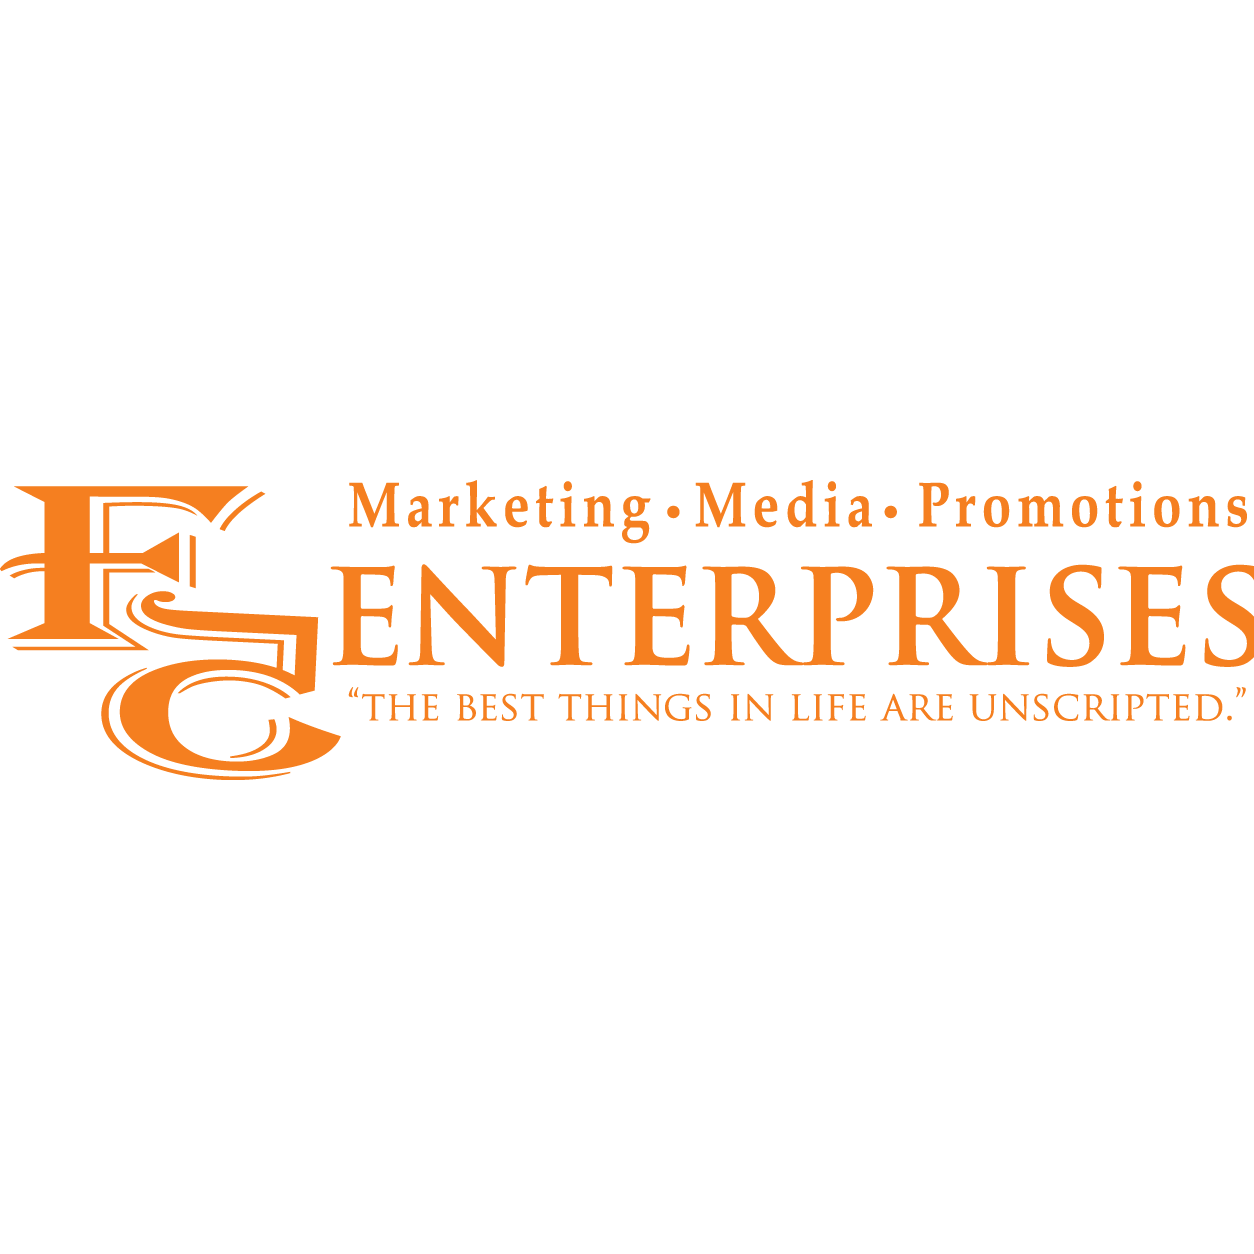 F5 Enterprises LLC